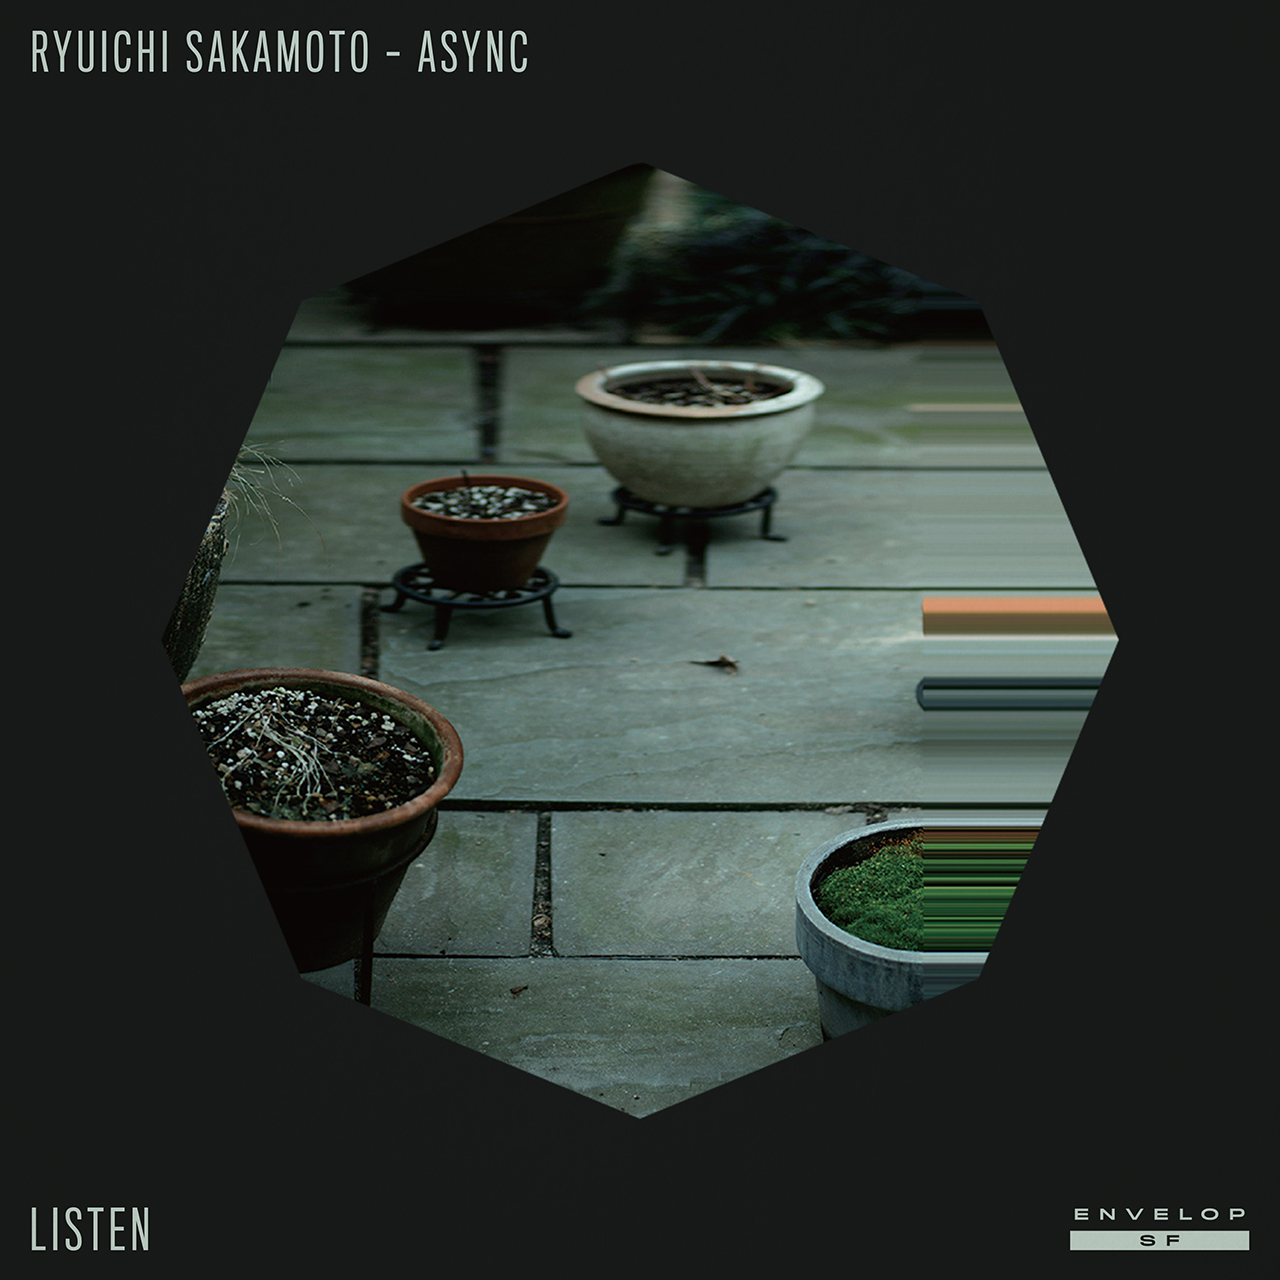 Ryuichi Sakamoto - Async : LISTEN  Thu August 16, 2018 | At Envelop SF | 1st session - 7:30 PM Doors // 2nd session - 9:30 PM Doors